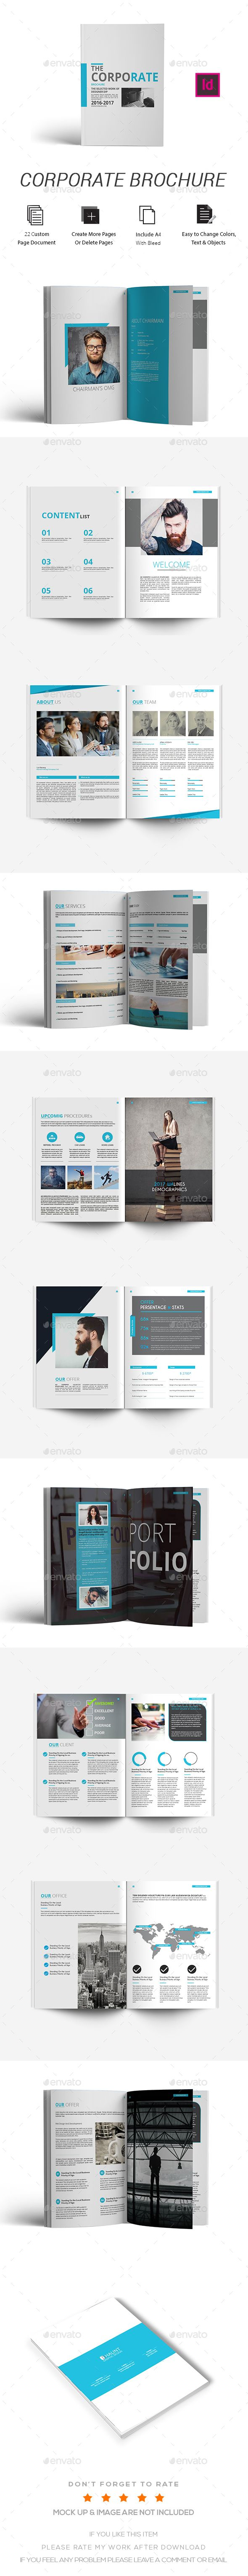 Brochure Design 22 Pages A4 Template InDesign INDD